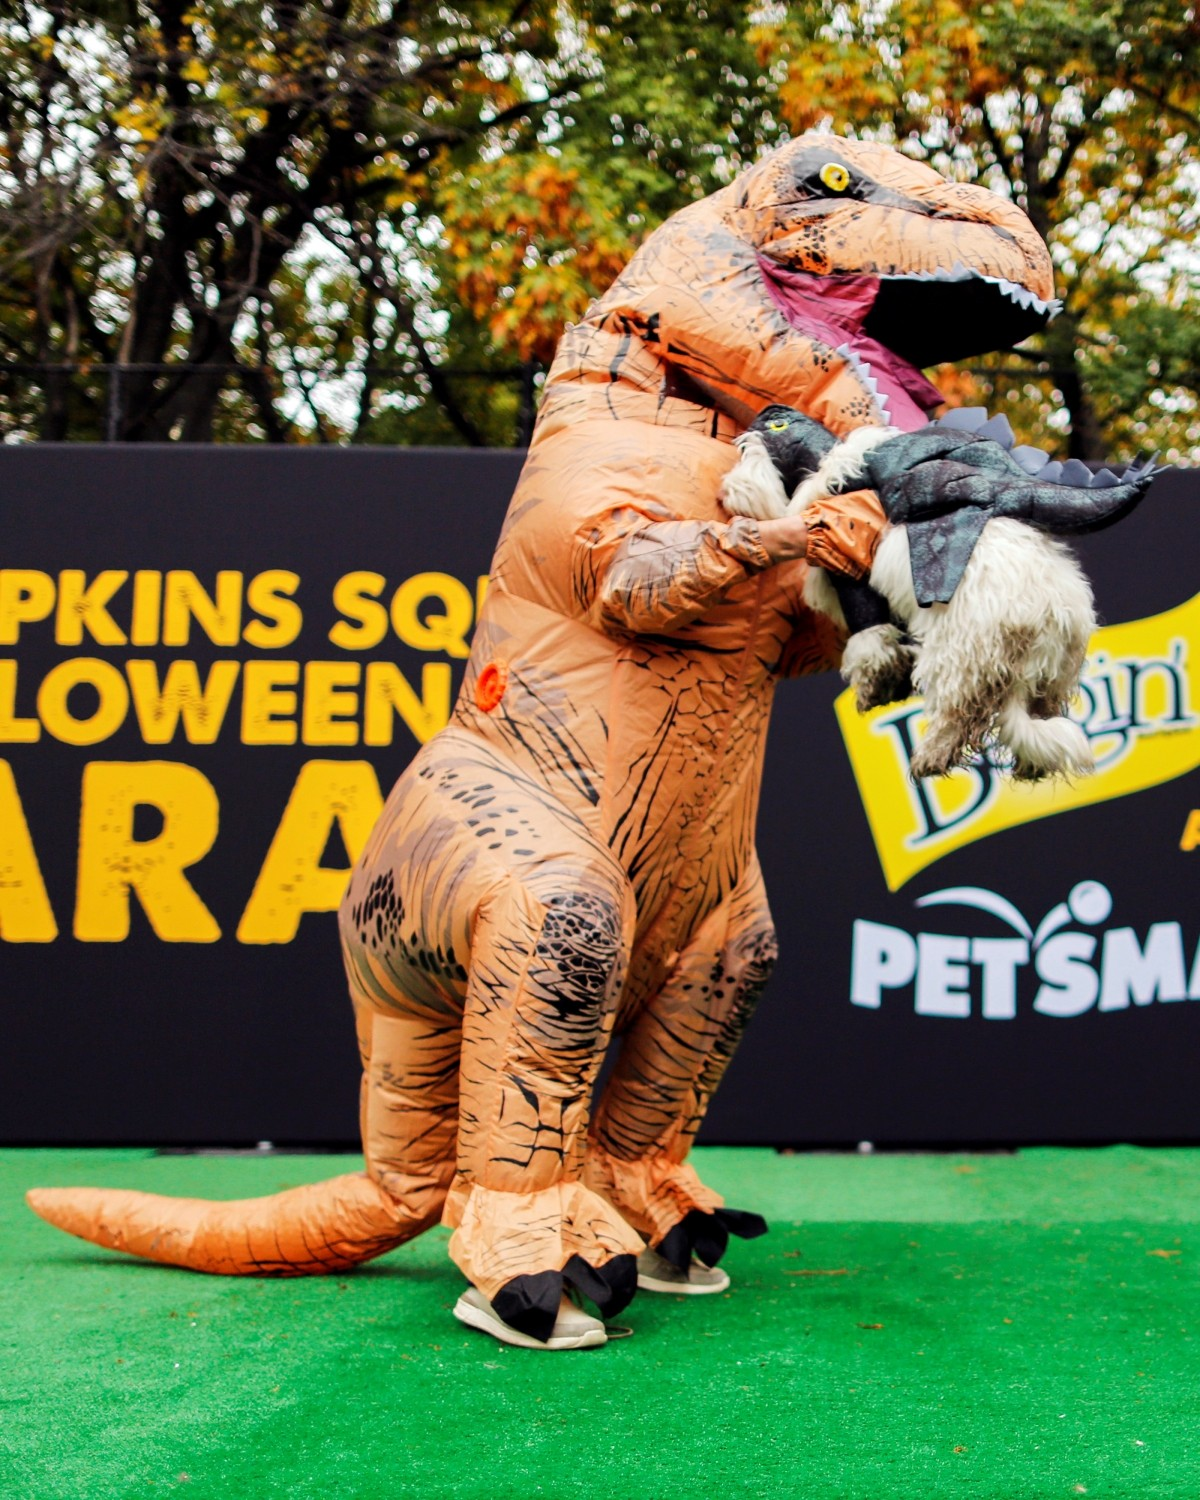 A reveller take part in the annual halloween dog parade at Manhattan's Tompkins Square Park in New York, U.S. October 22, 2016.